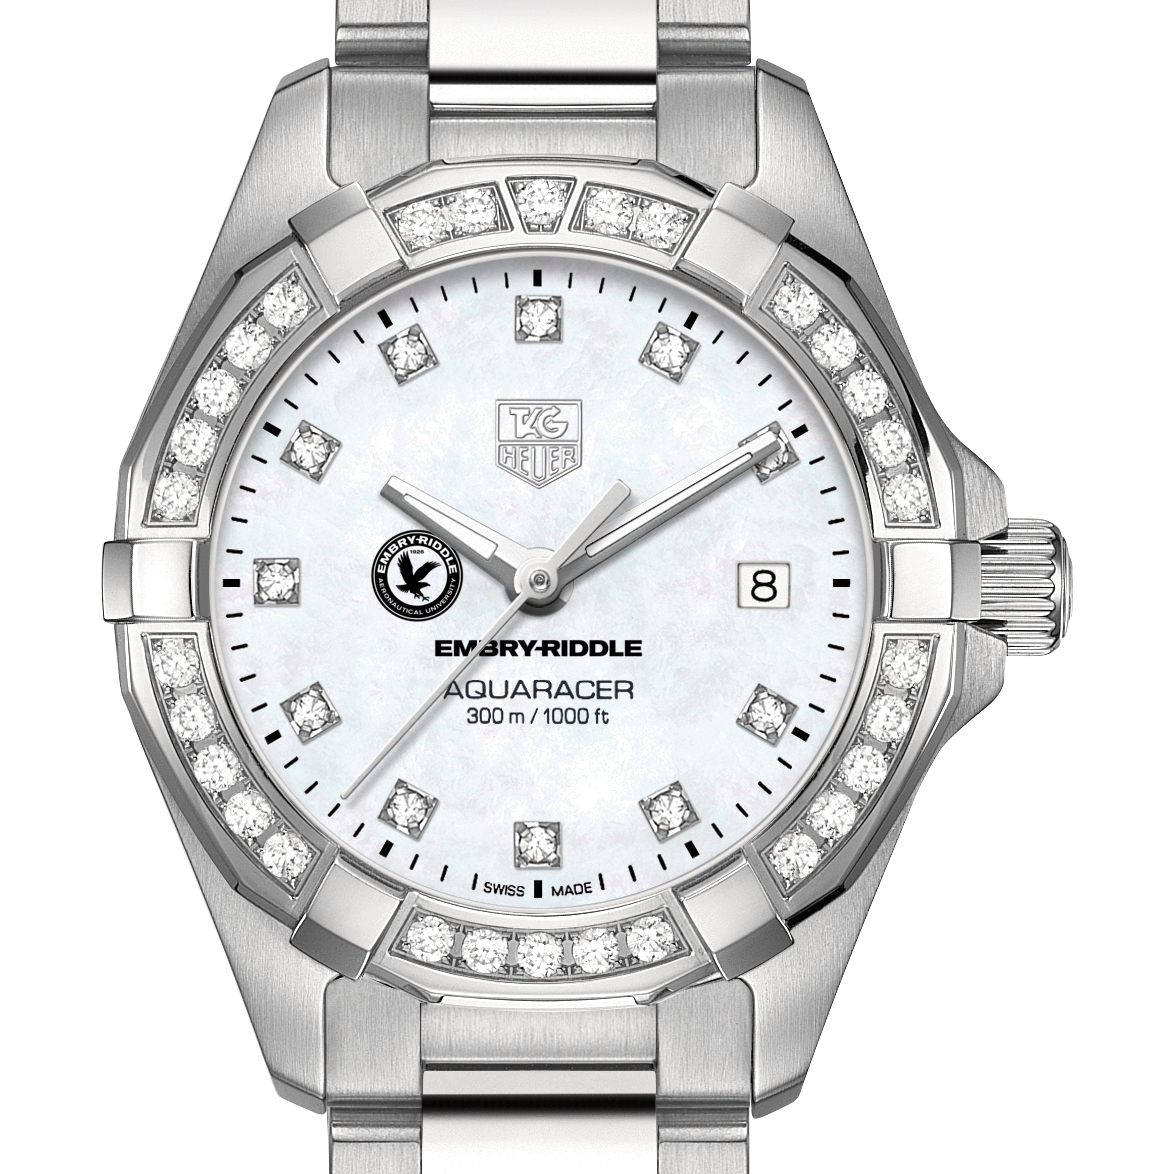 Embry-Riddle W's TAG Heuer Steel Aquaracer with MOP Dia Dial & Bezel - Image 1